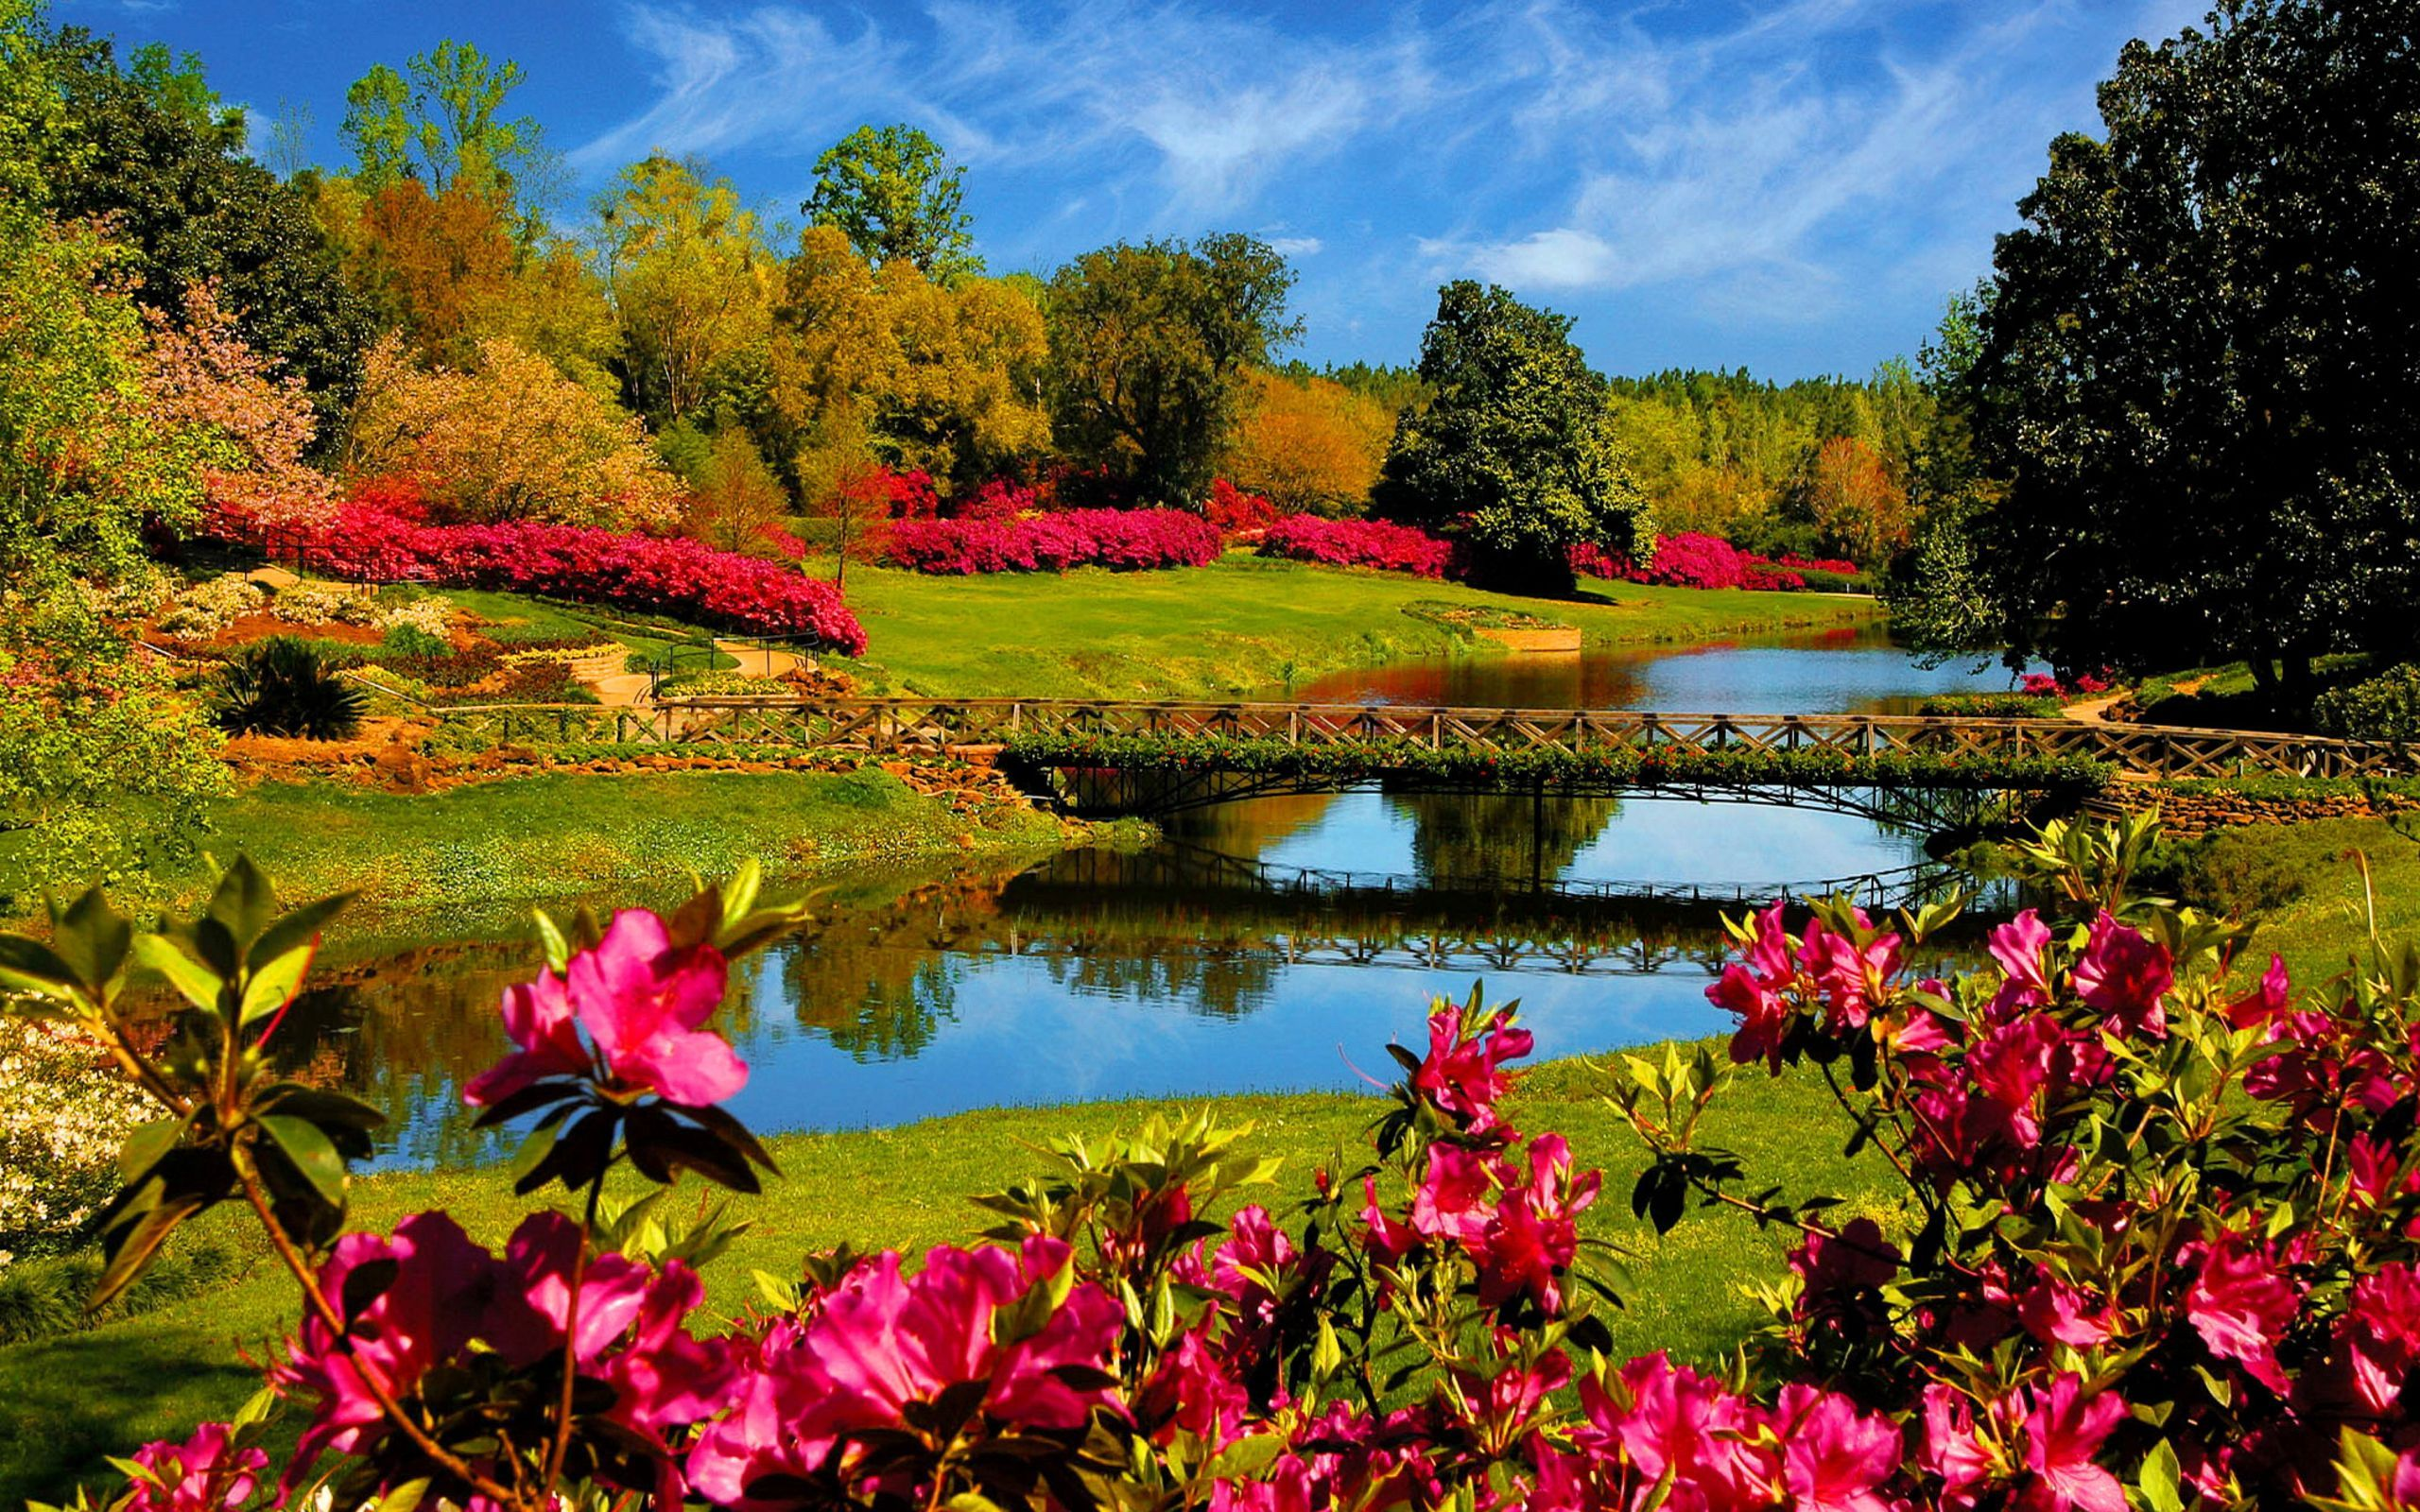 wallpapers Spring Scenery Wallpaper beautiful spring landscape wallpapers